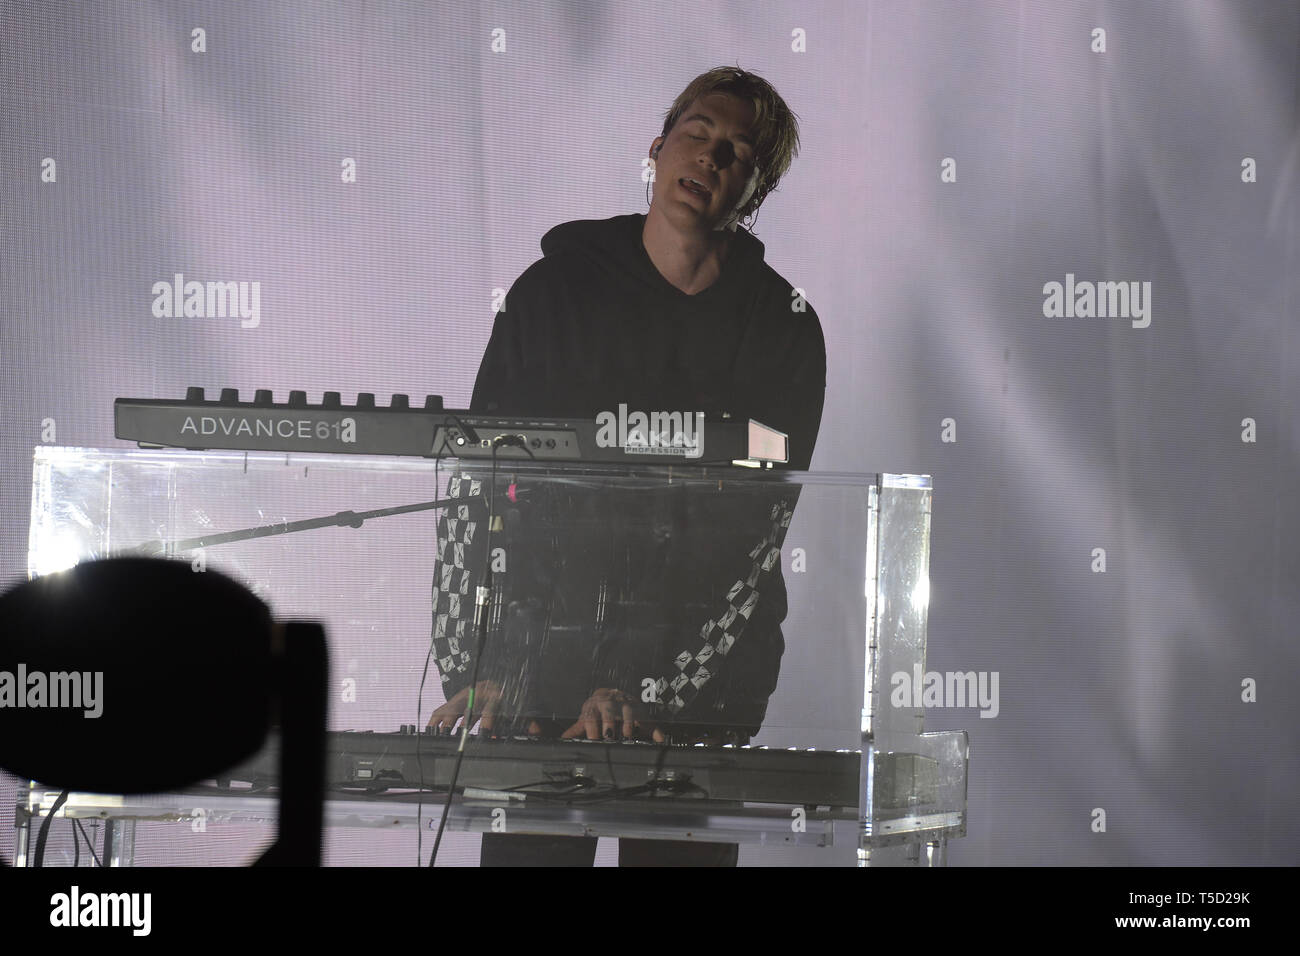 Miami Beach, FL, USA. 23rd Apr, 2019. Paul Jason Klein of LANY performs at the Fillmore on April 23, 2019 in Miami Beach, Florida. Credit: Mpi04/Media Punch/Alamy Live News Stock Photo